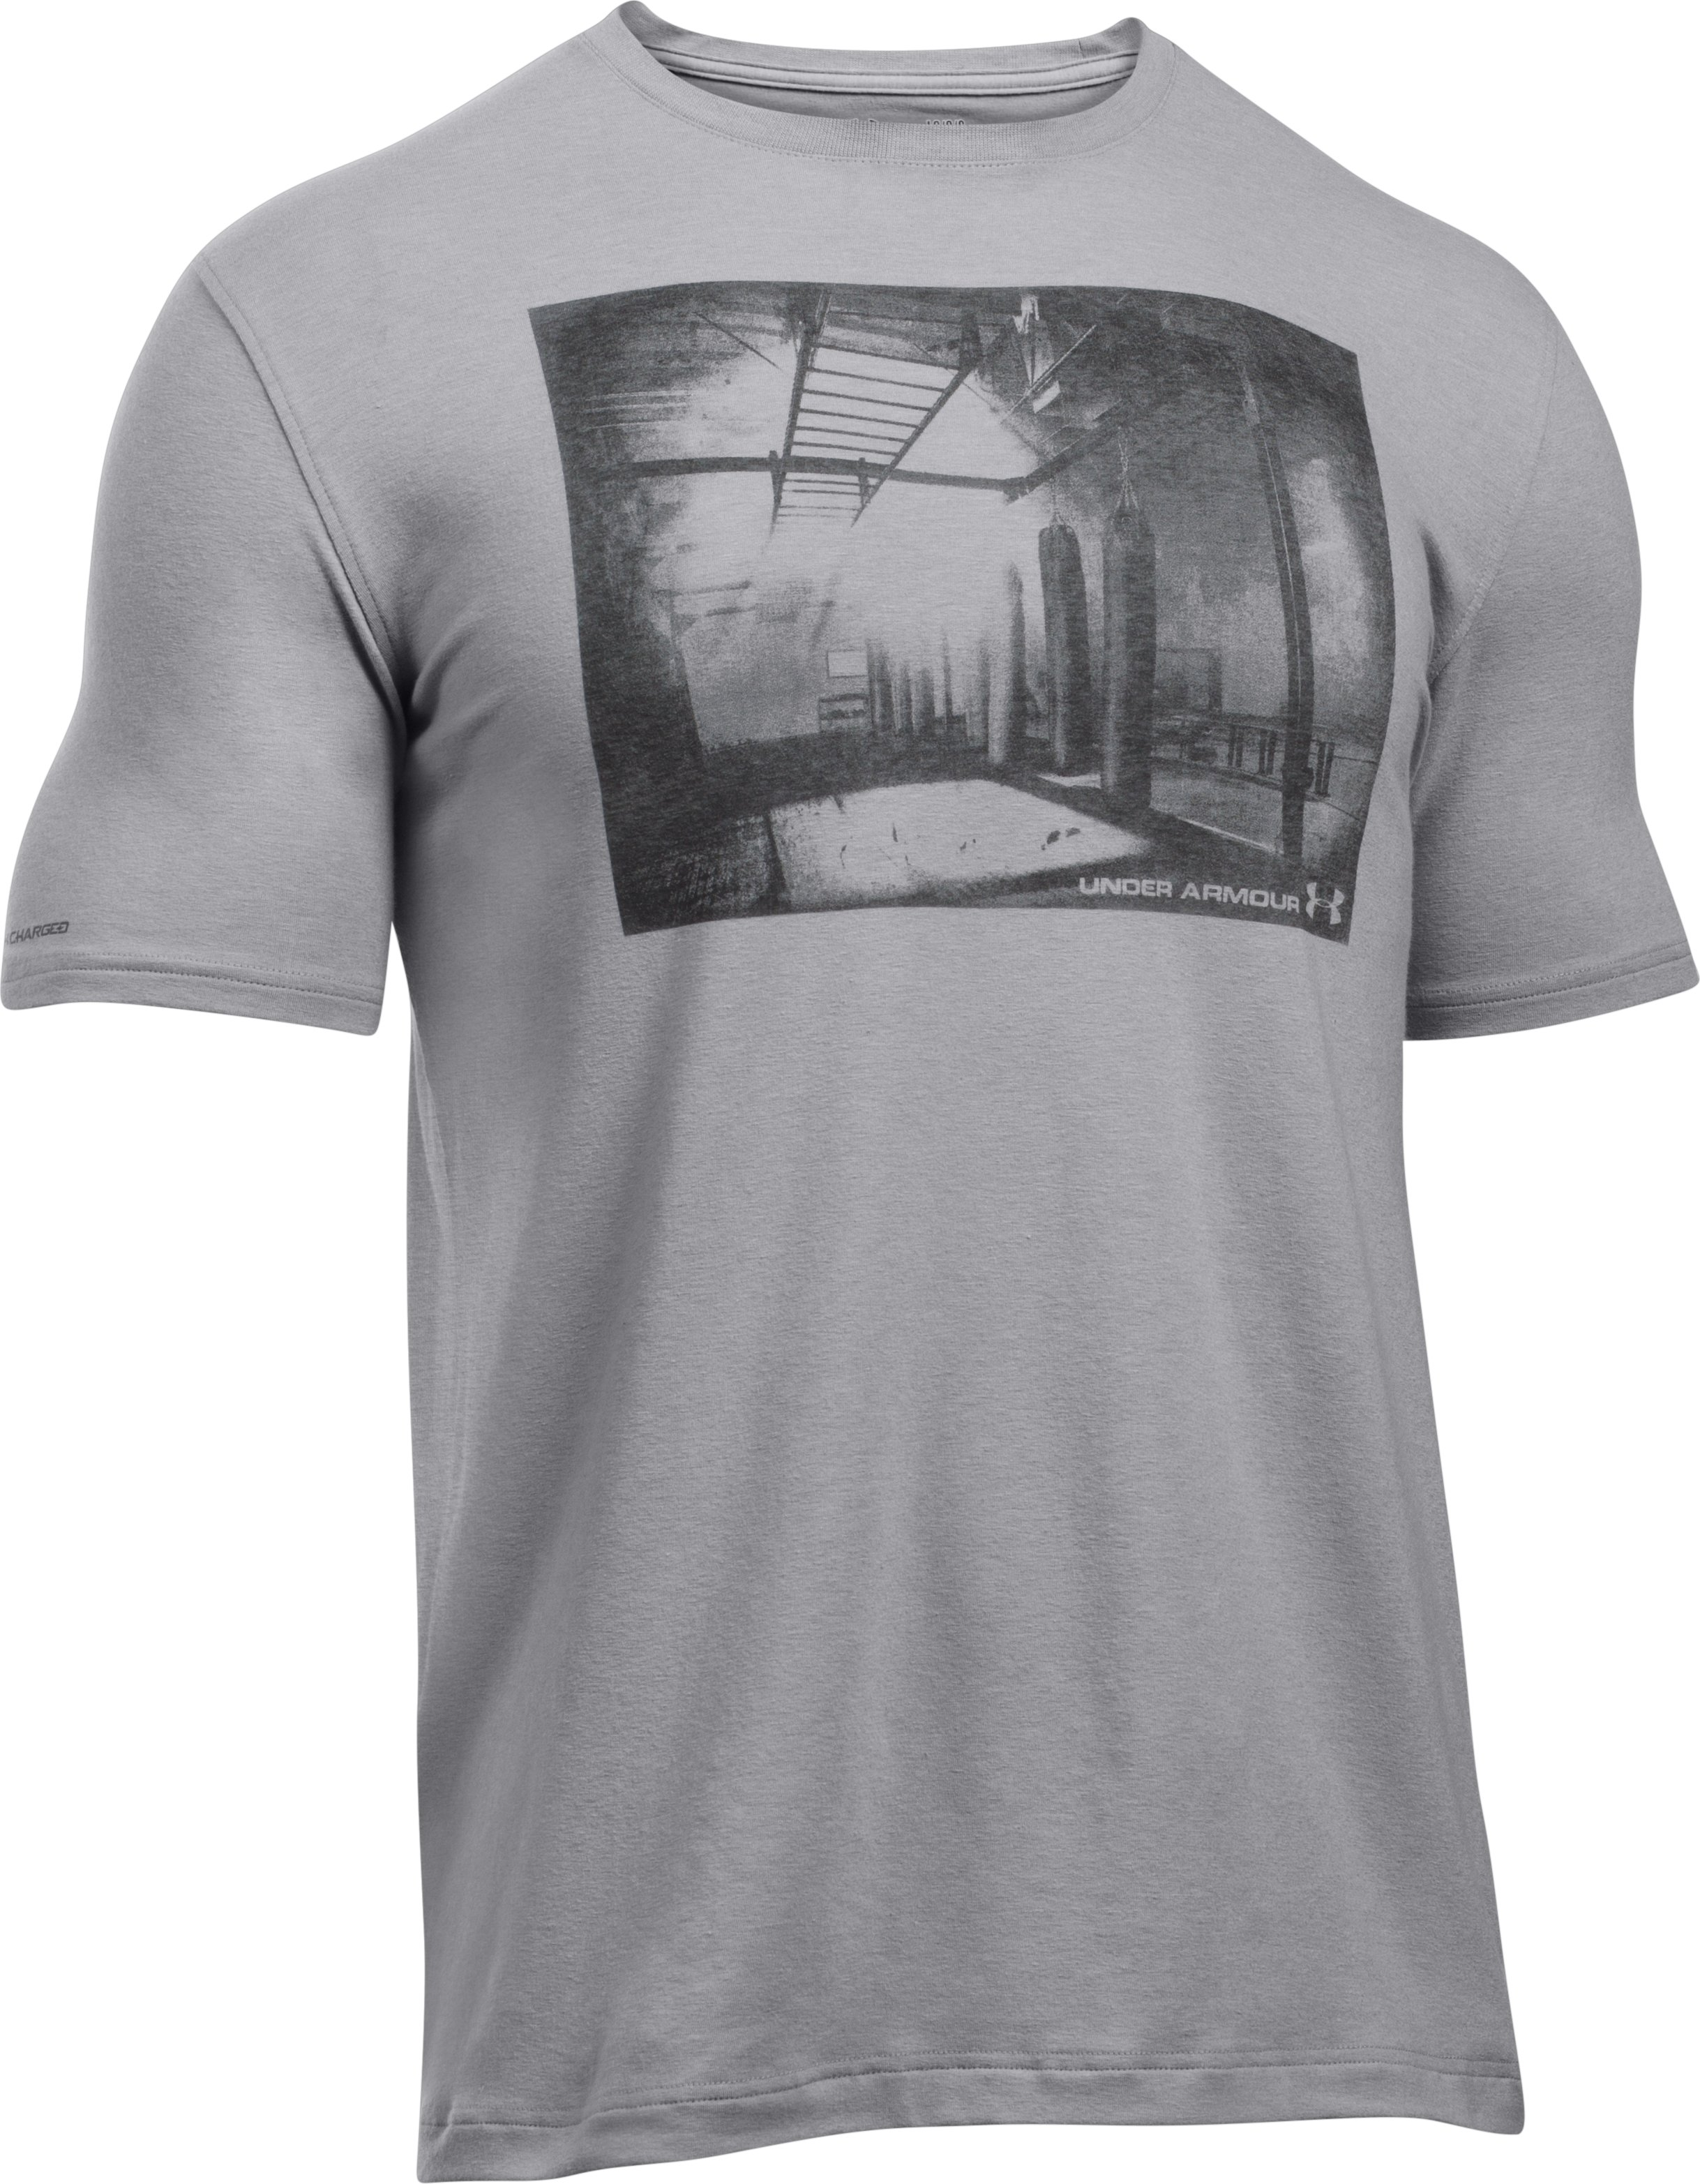 Men's UA Photoreal Gym T-Shirt, True Gray Heather